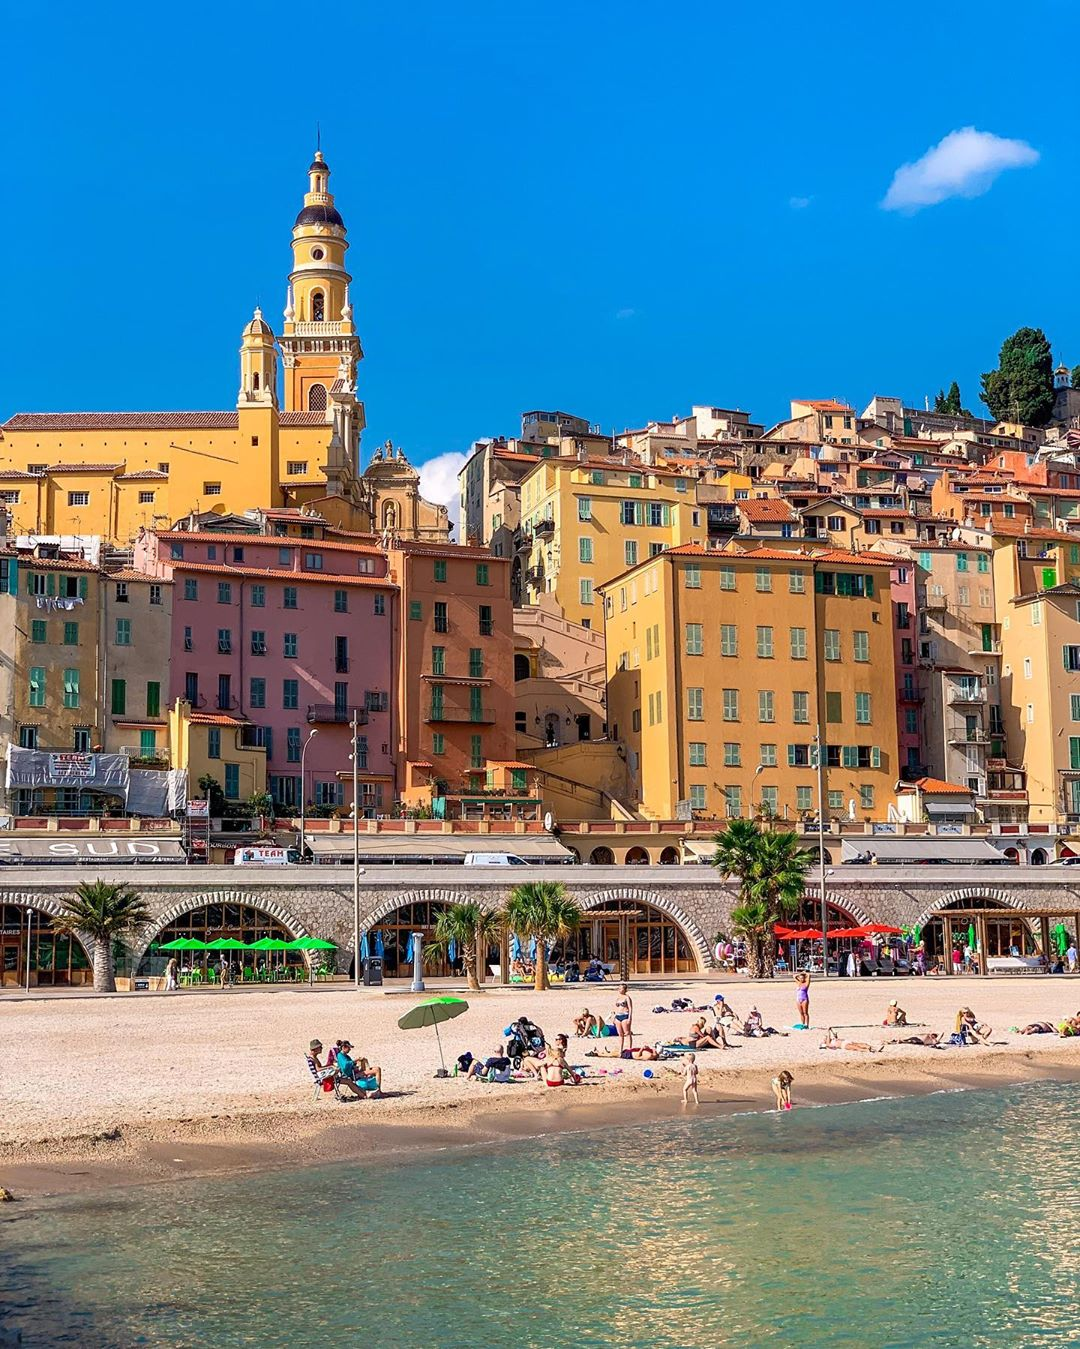 Tourism in Menton: what not to miss